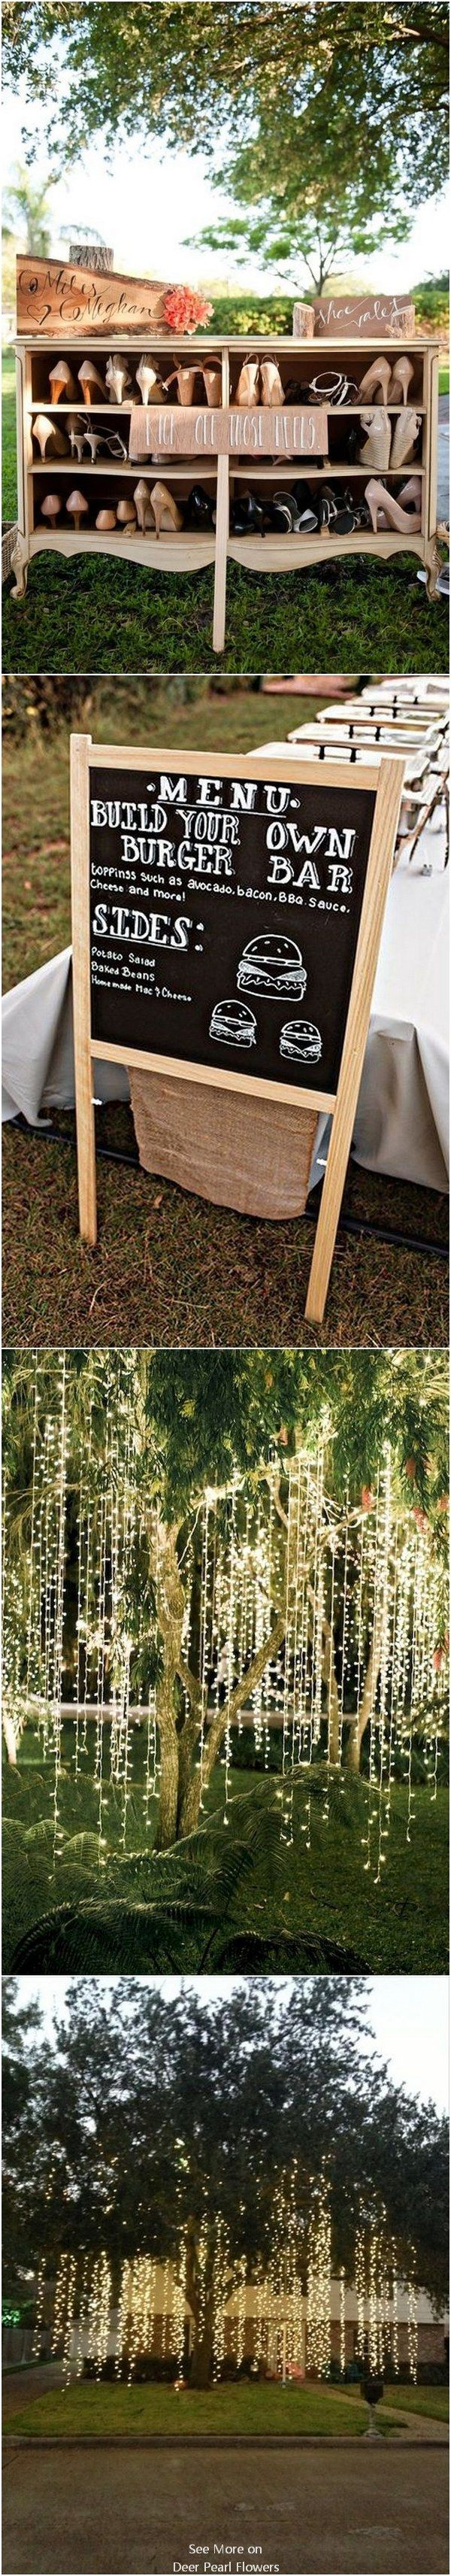 Intimate Backyard Outdoor Wedding Decor Ideas #backyardwedding #outdoorwedding #countrywedding #weddingdecor  ❤️http://www.deerpearlflowers.com/intimate-backyard-outdoor-wedding-ideas/